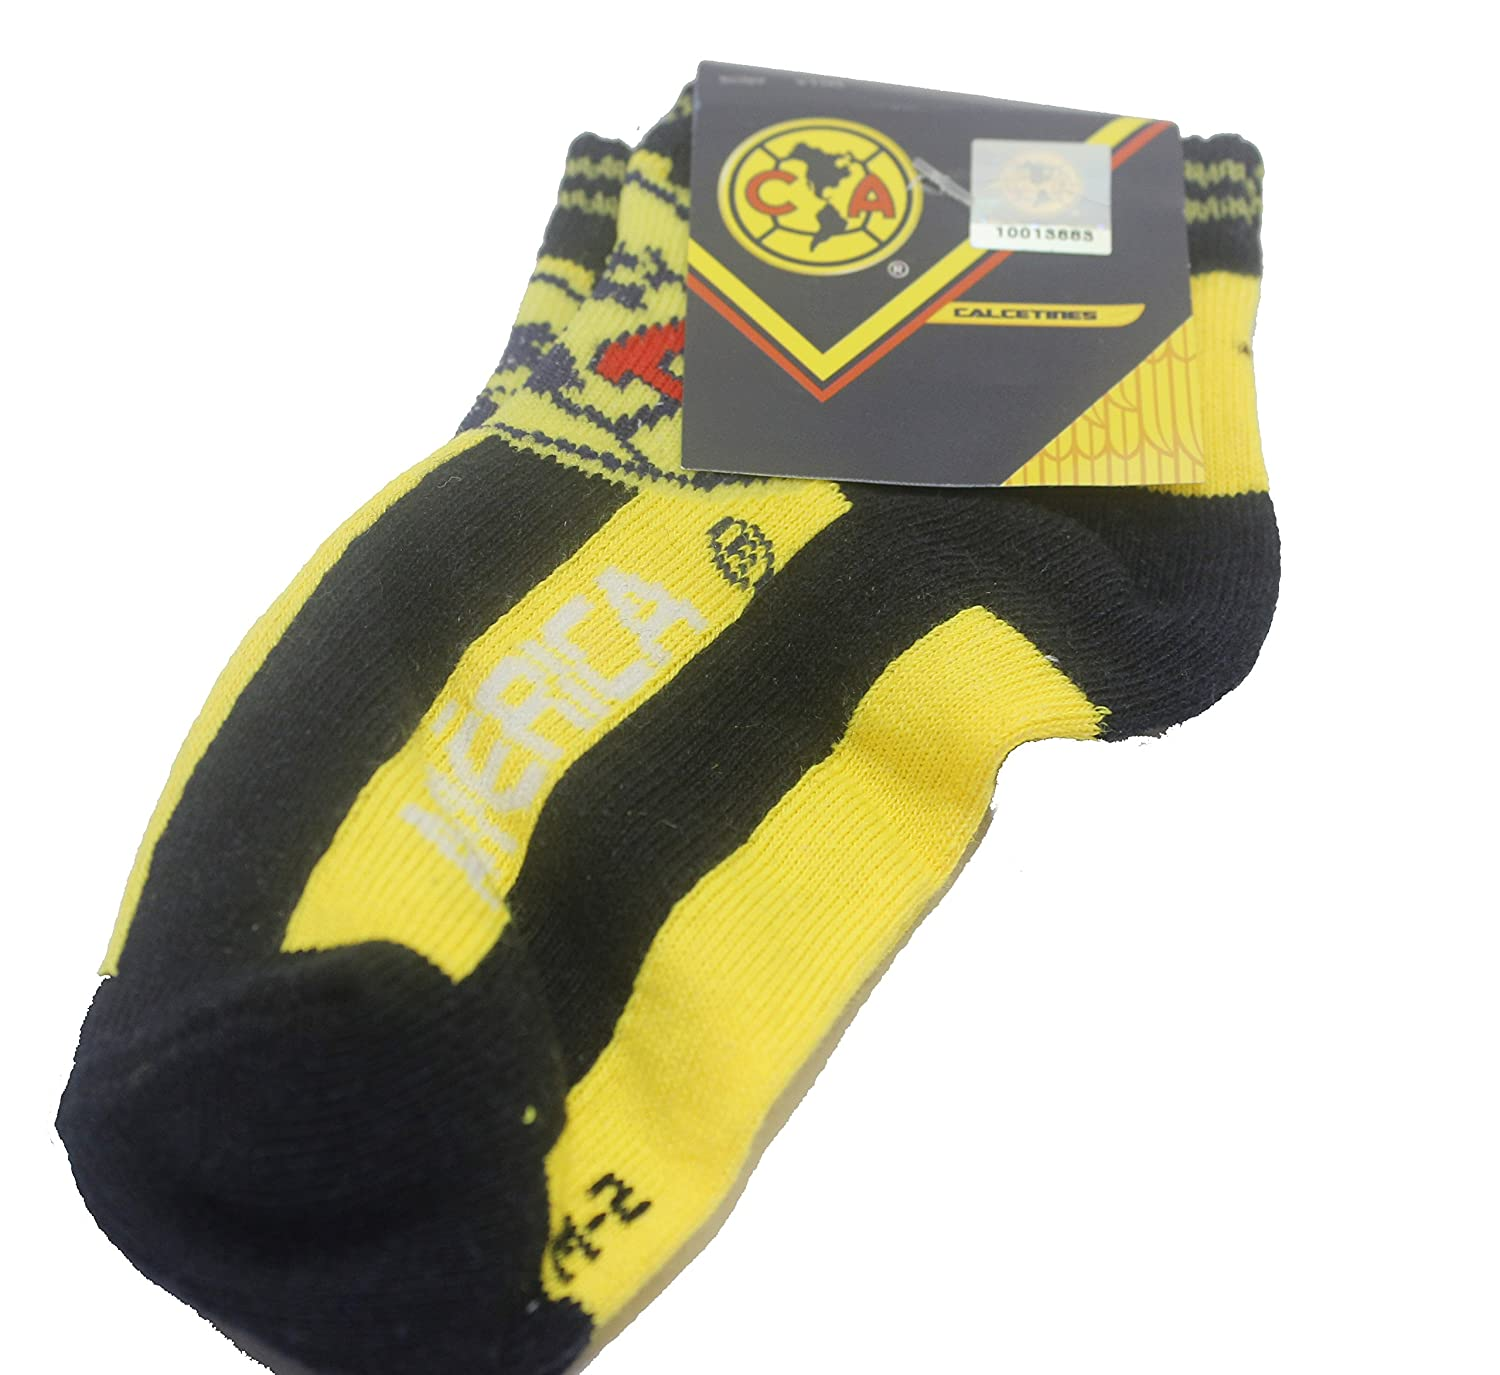 Amazon.com : Aguilas del America Soccer Mexico Kids Socks - Calceta Aguilas del America Kids : Everything Else